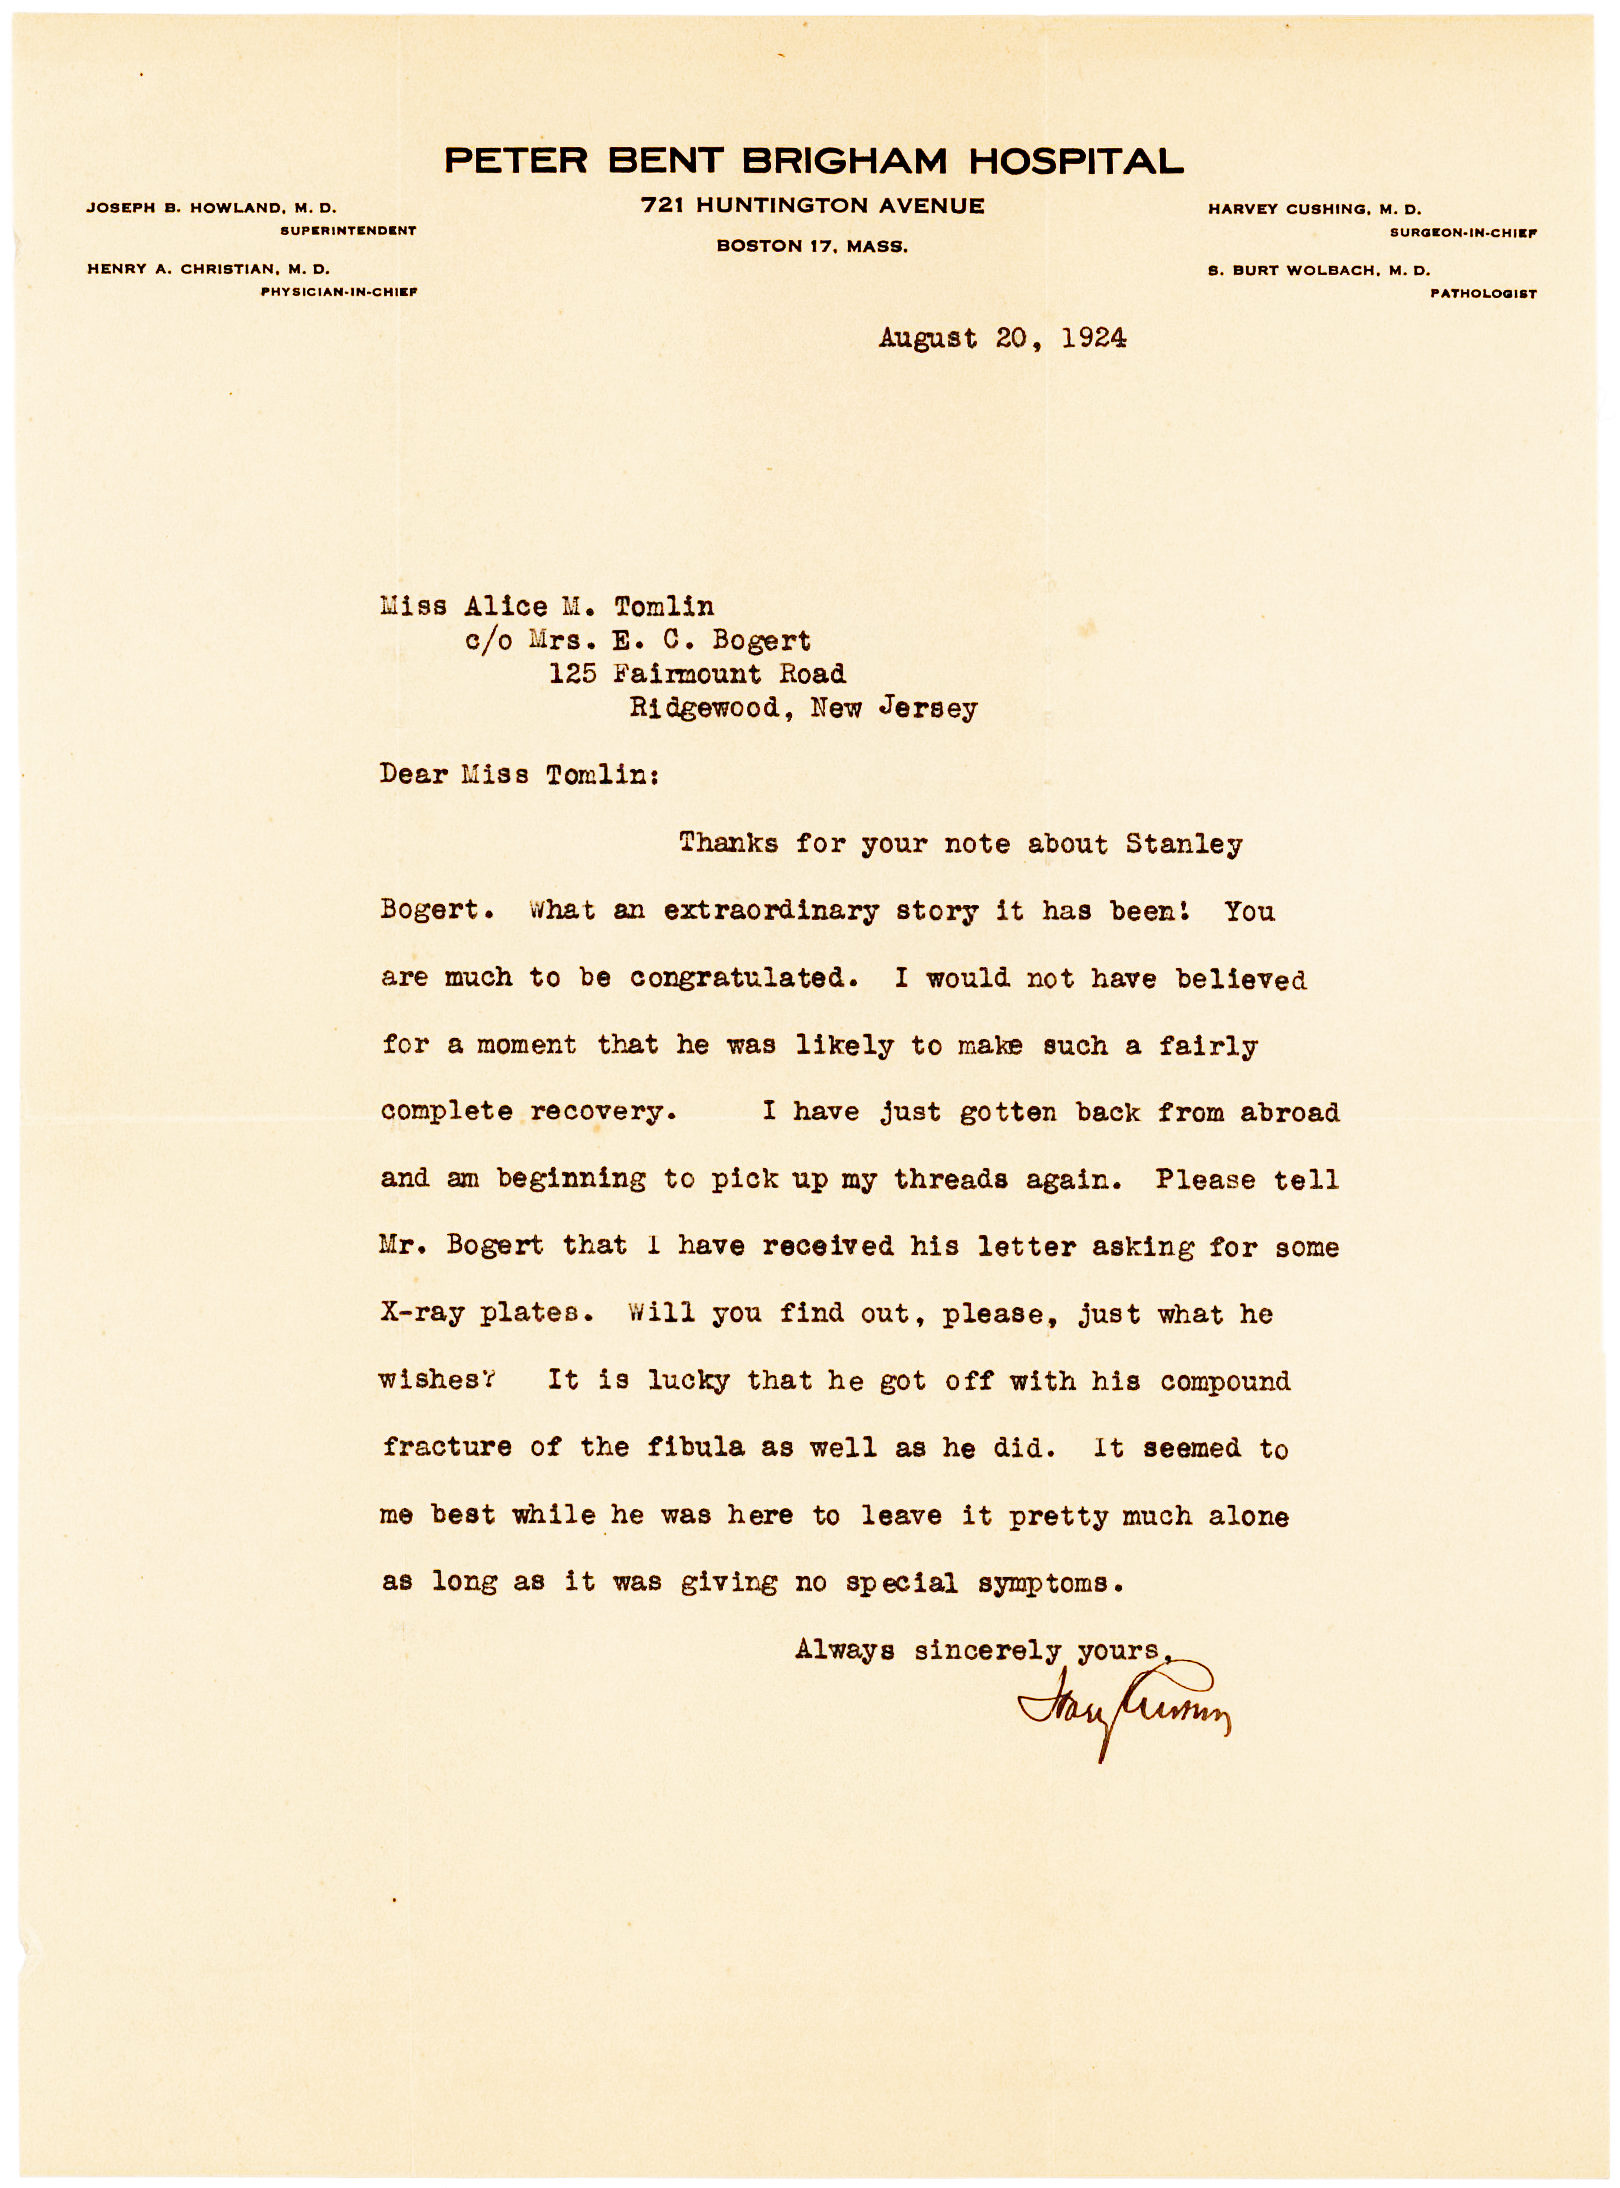 "Letter from Pioneer Neurosurgeon Harvey Cushing: ""It is lucky that he got off with his compound fracture of the fibula as well as he did"""